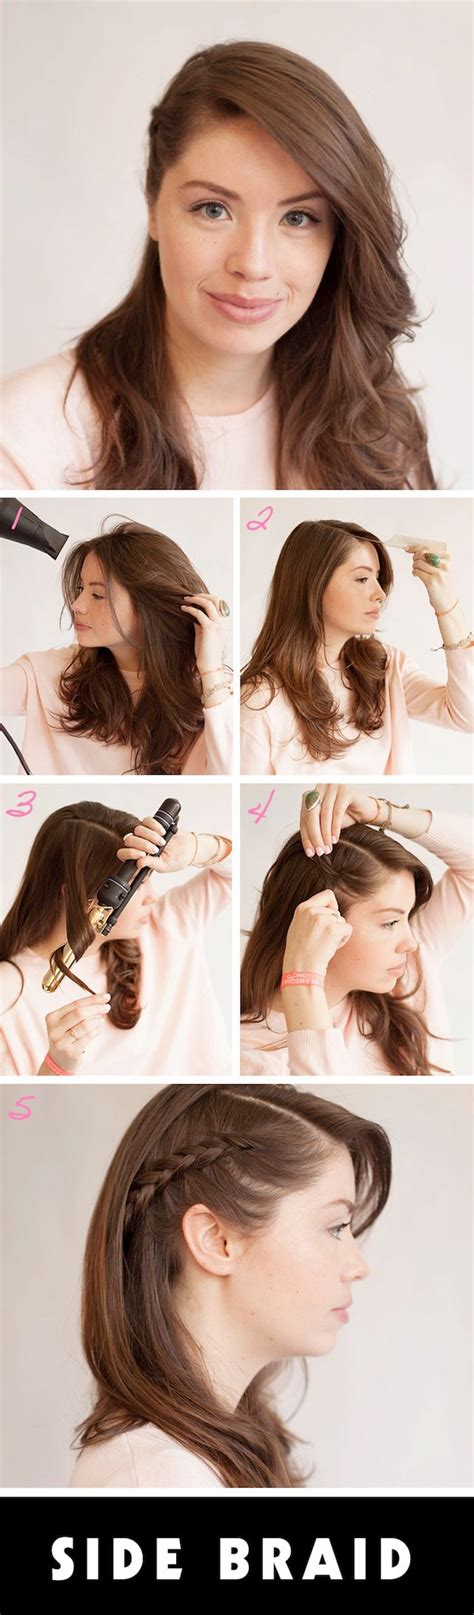 98 best images about hair ideas on pinterest prom hairstyles step by step fade haircut